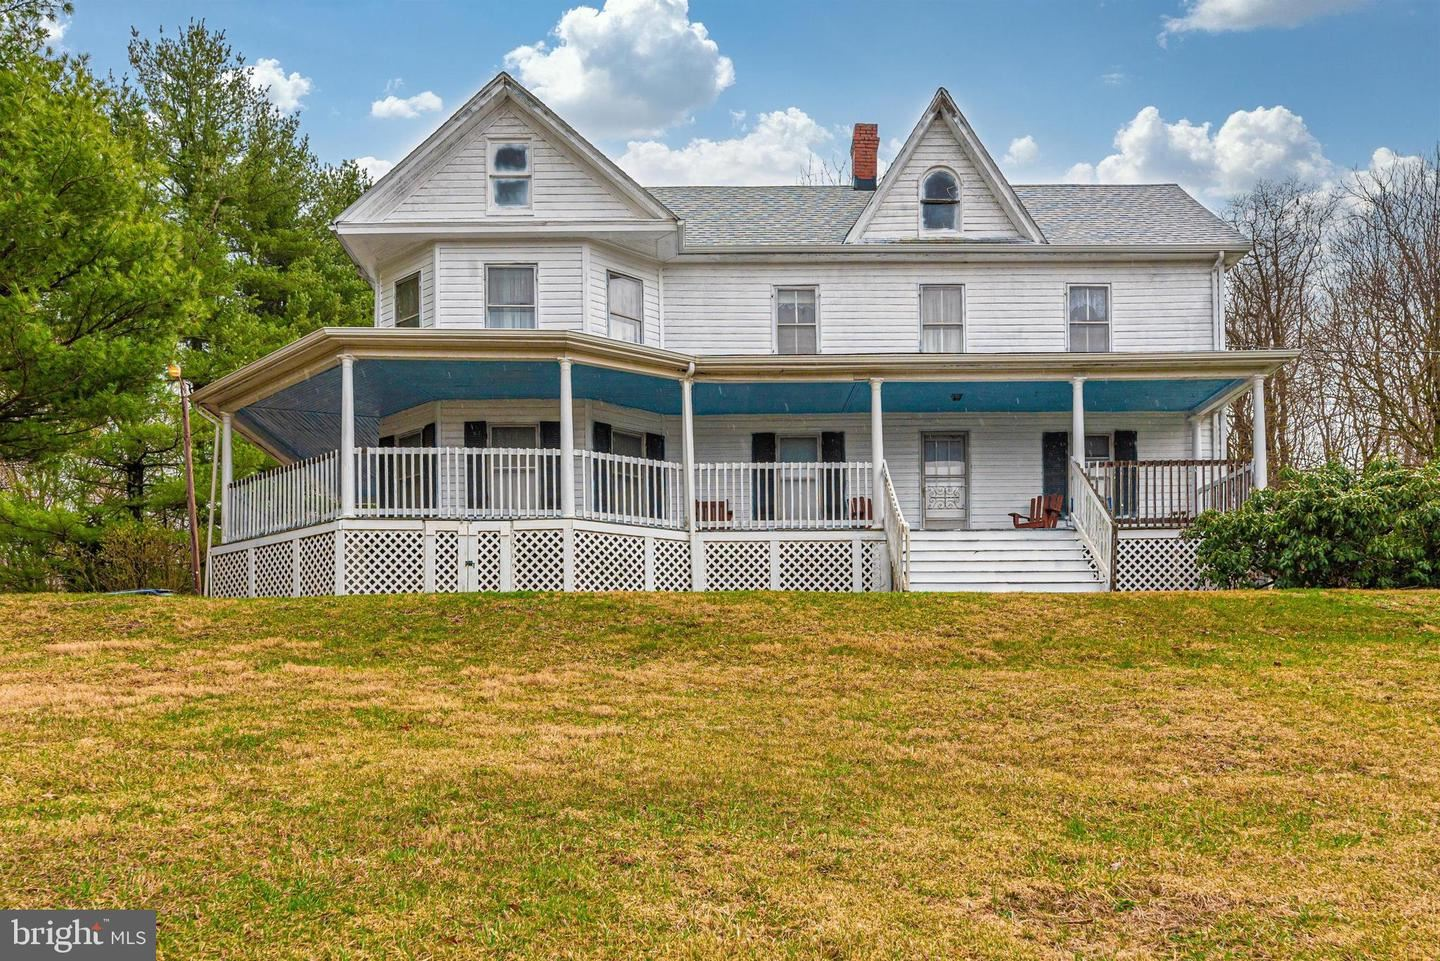 280 E WATERSVILLE RD, Mount Airy, MD 21771 - MLS#: MDHW290796